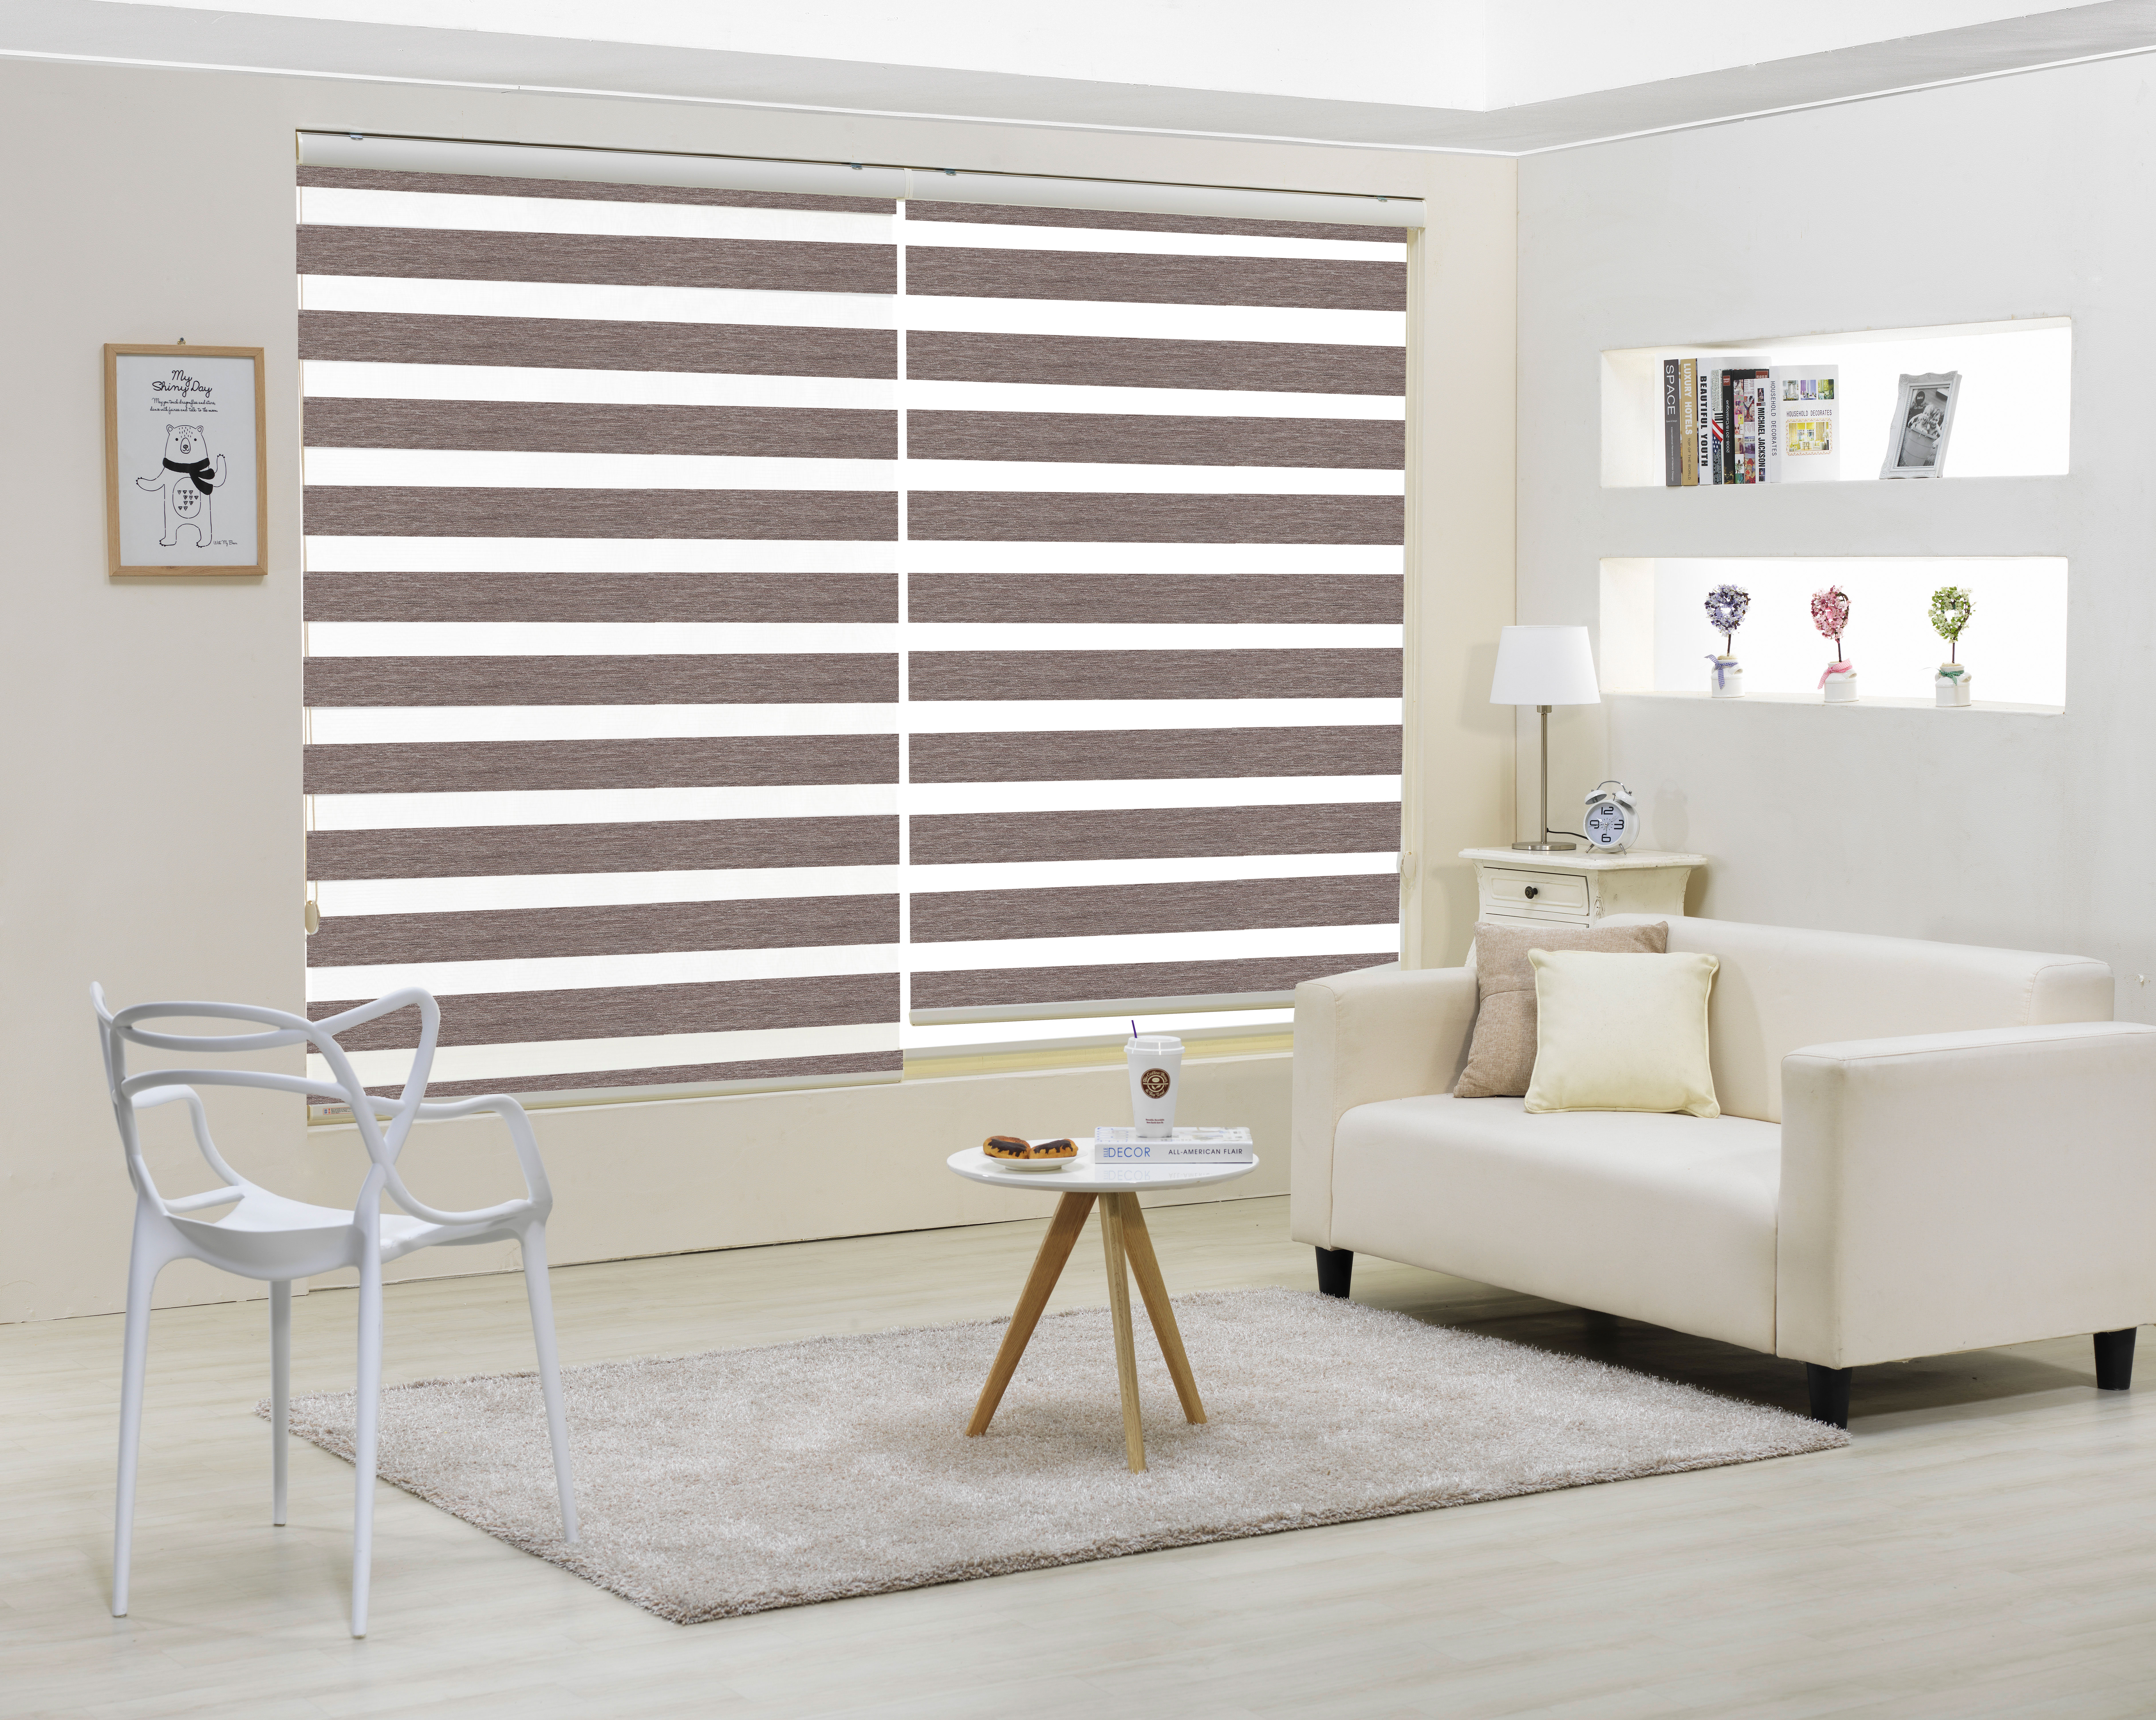 olivine blind korea blinds daekyeong triple combi blind